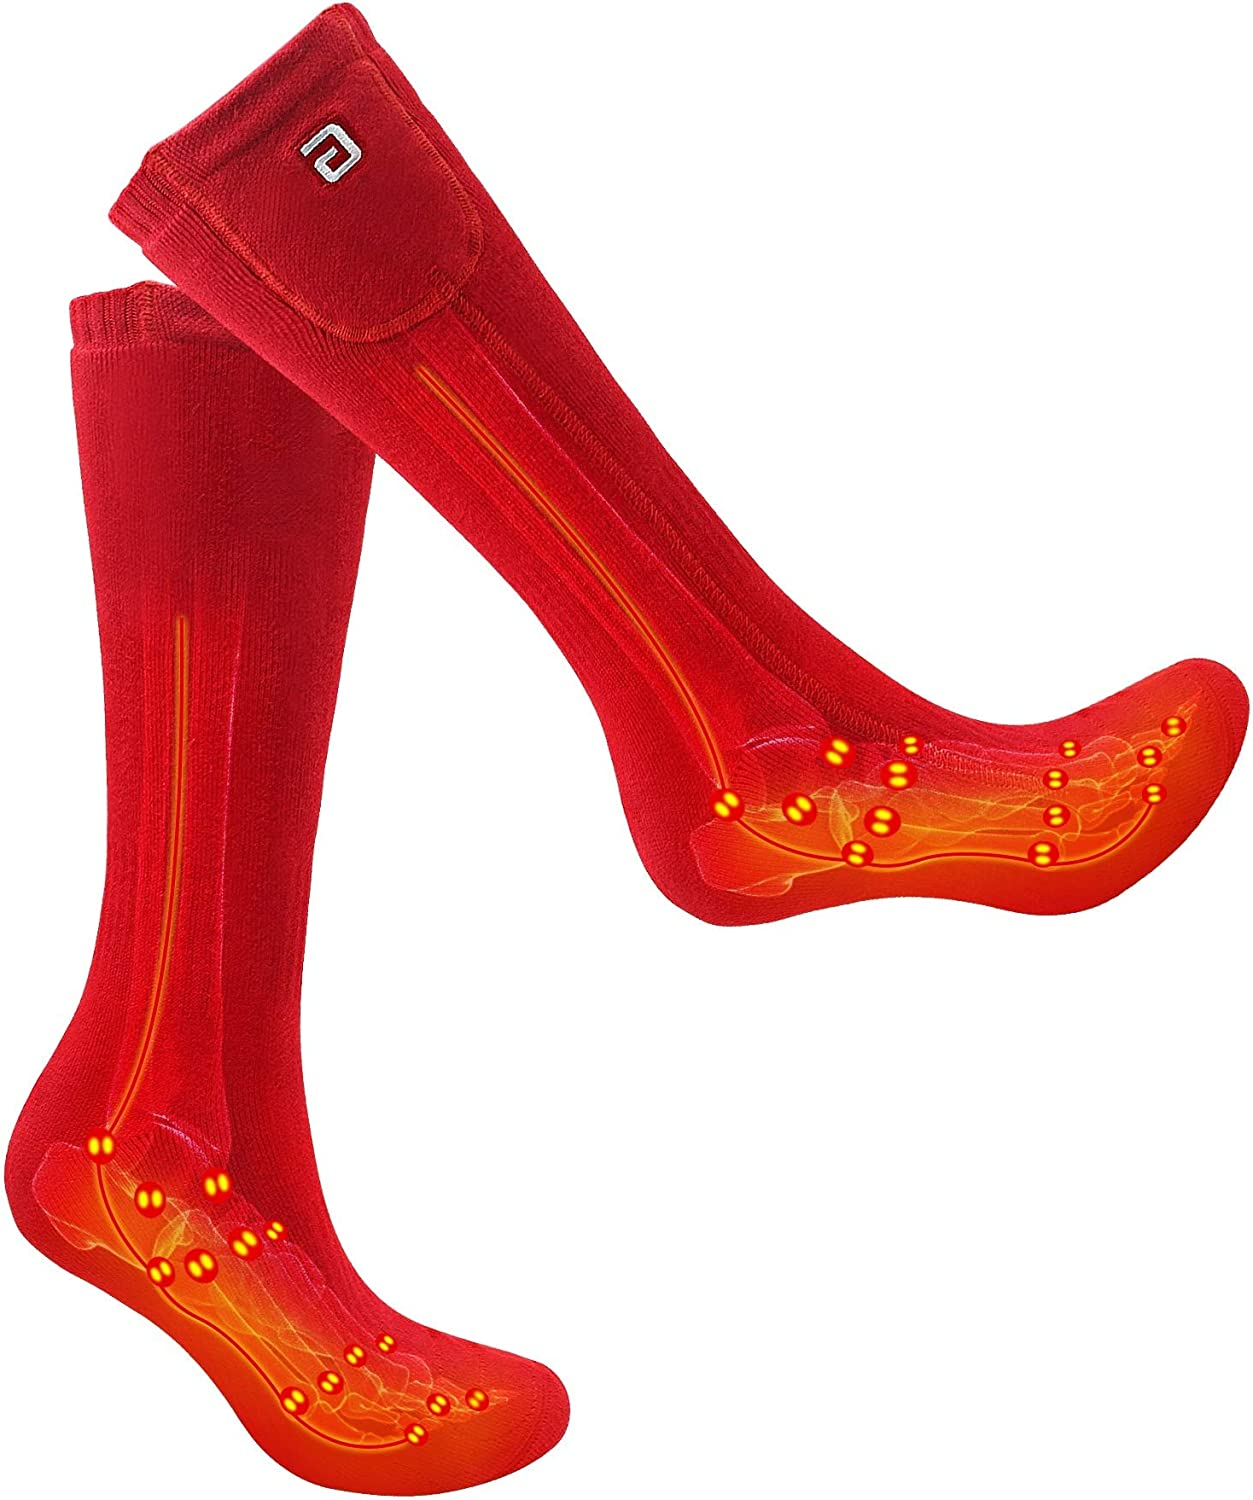 Daintymuse Battery Heated Socks